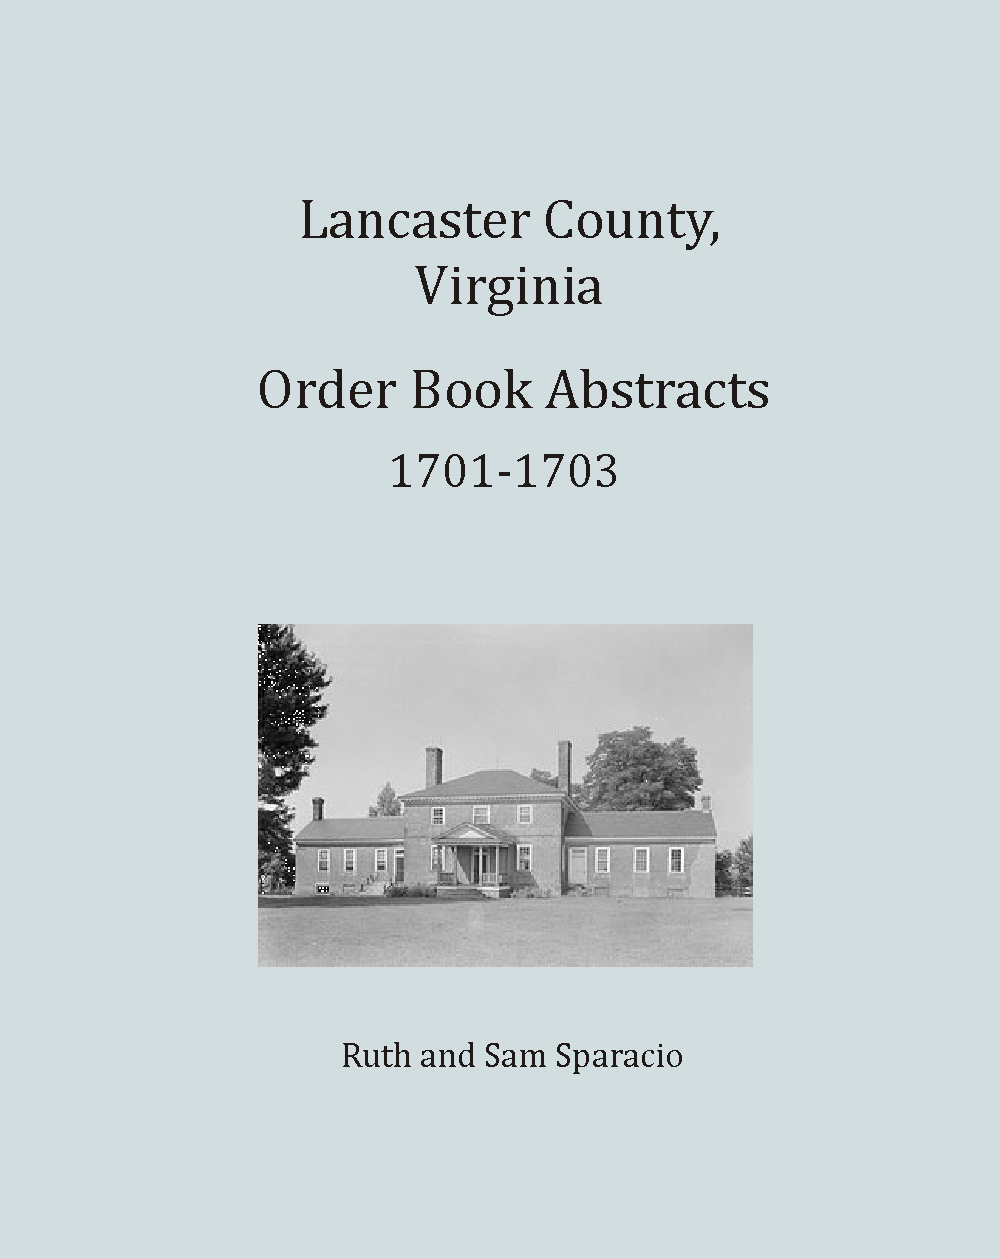 Lancaster County Virginia Order Book, 1701 - 1703